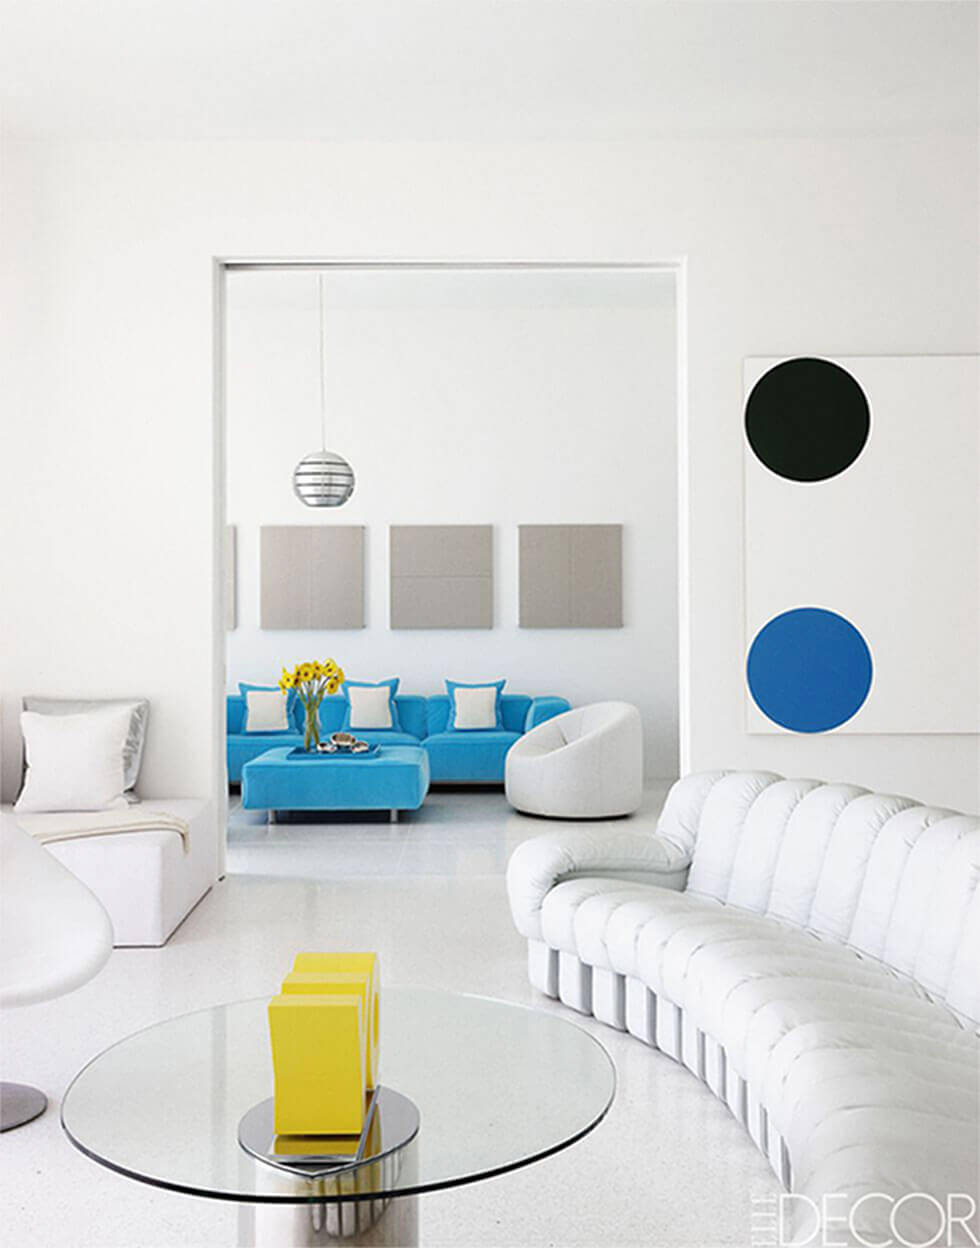 An all-white living room with vibrant pops of yellow and blue.